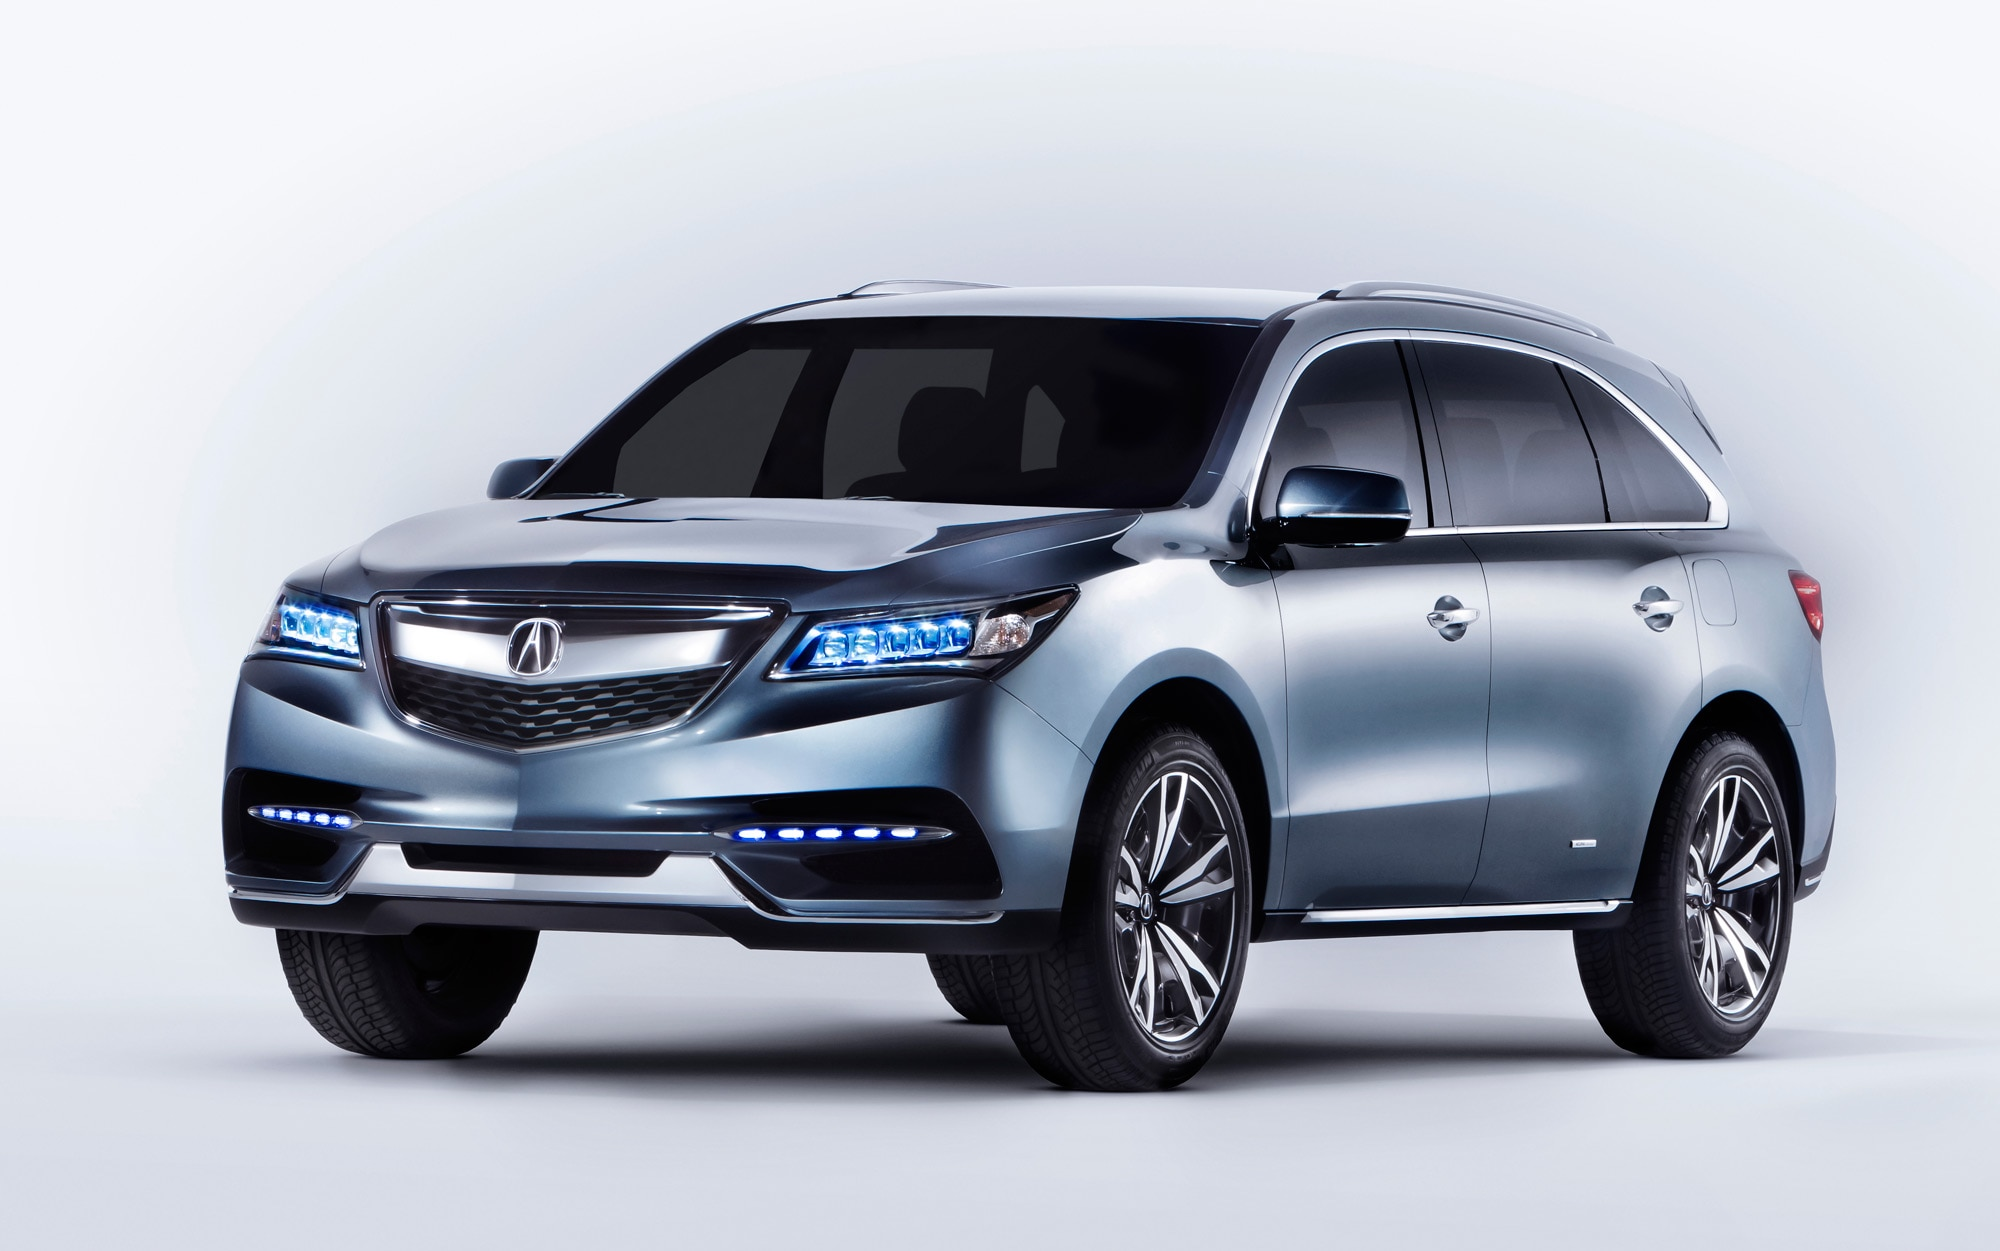 2014 Acura MDX Prototype Front Three Quarter1